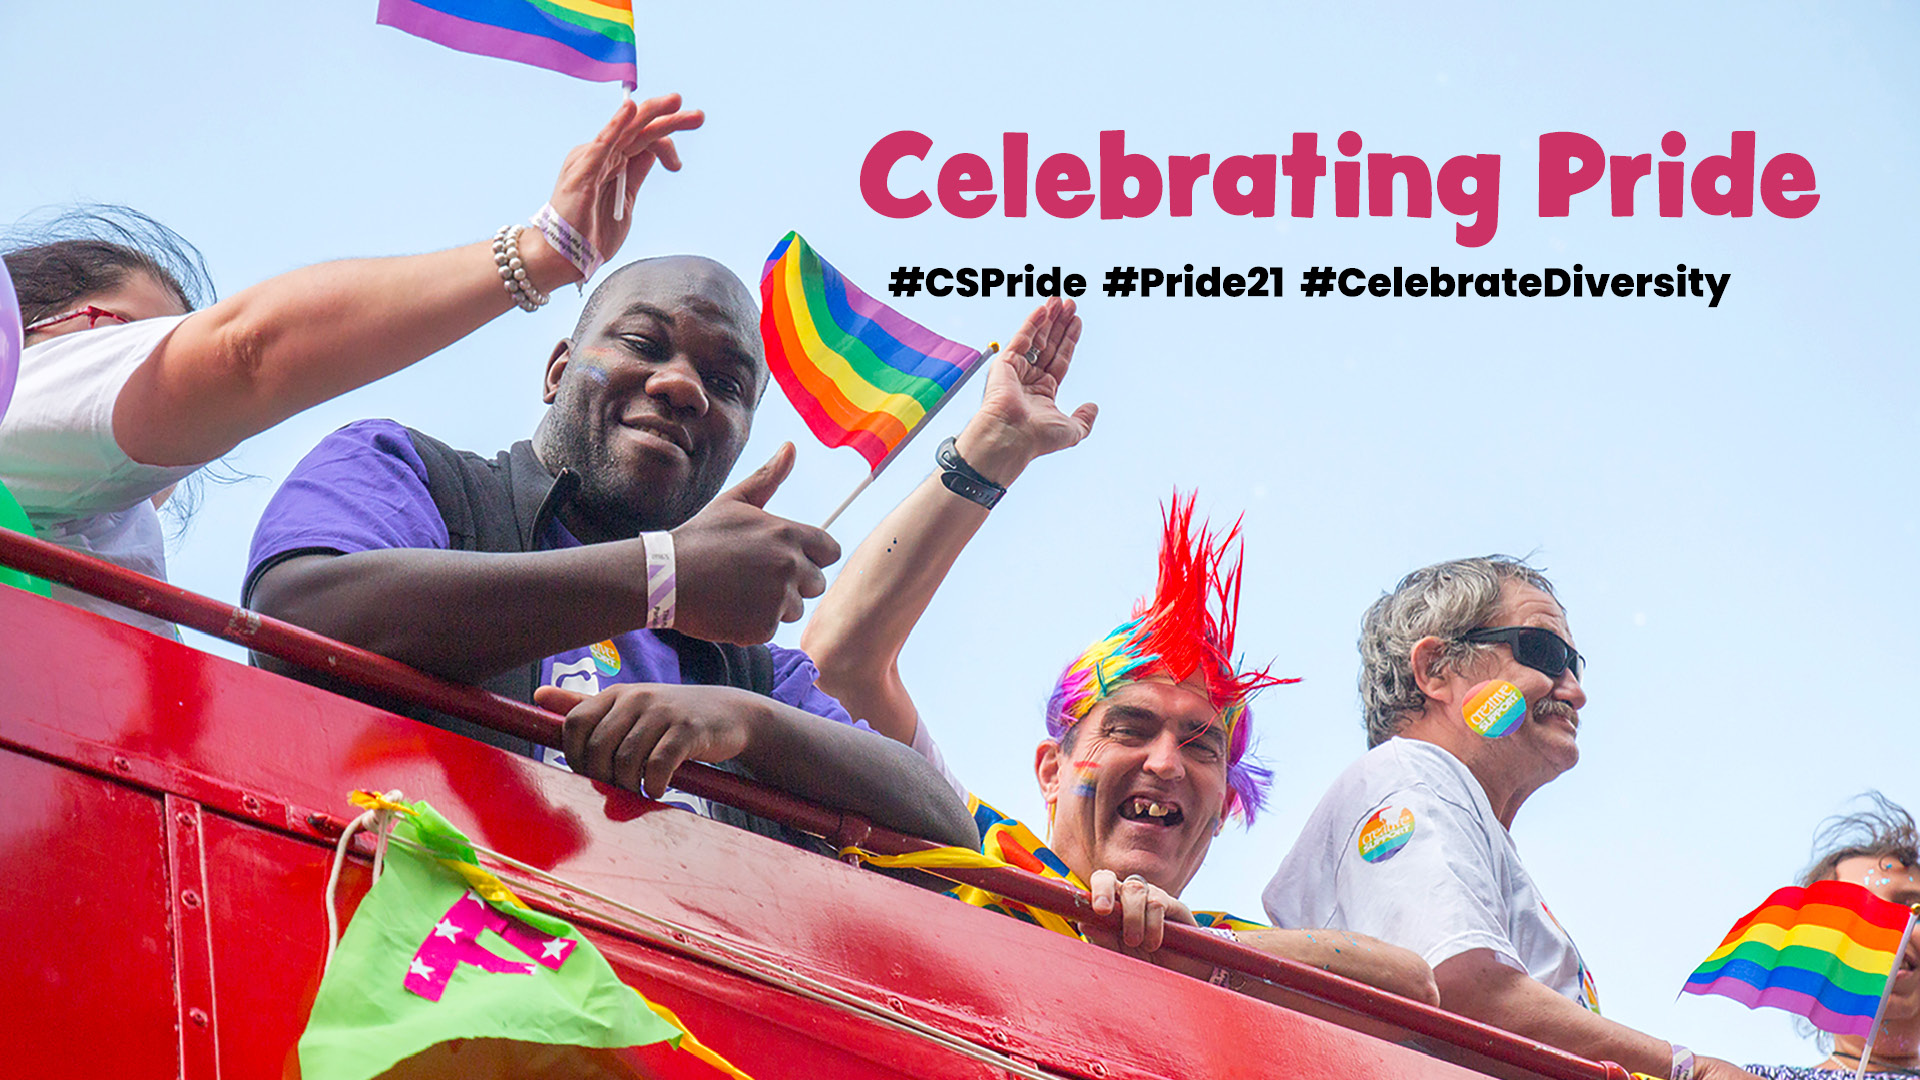 Join us in celebrating Pride this August